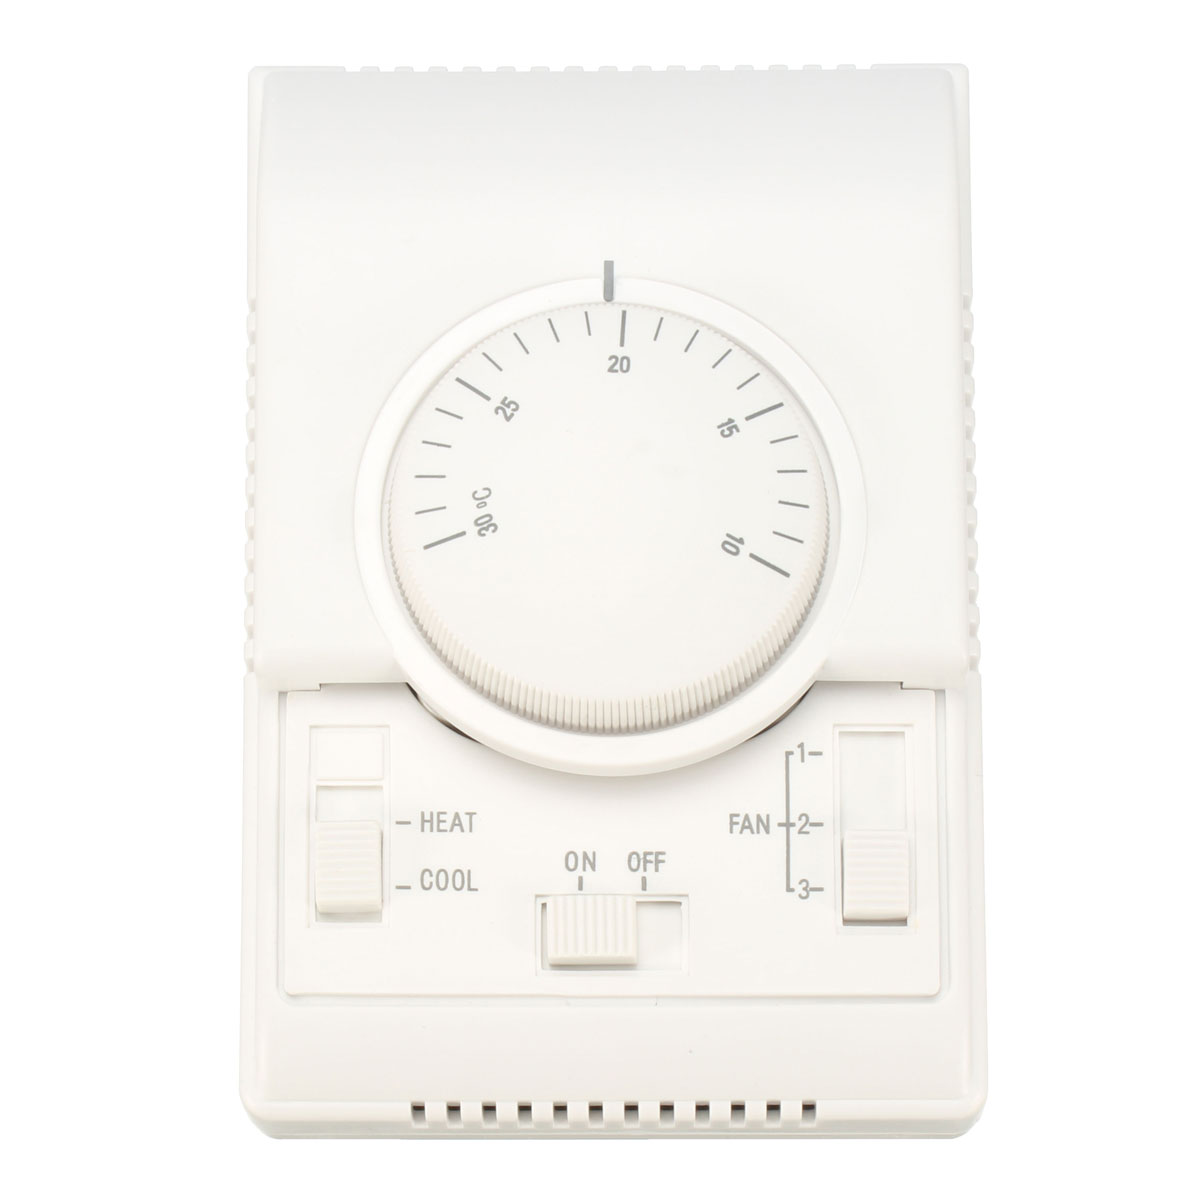 thermostat controller with lcd